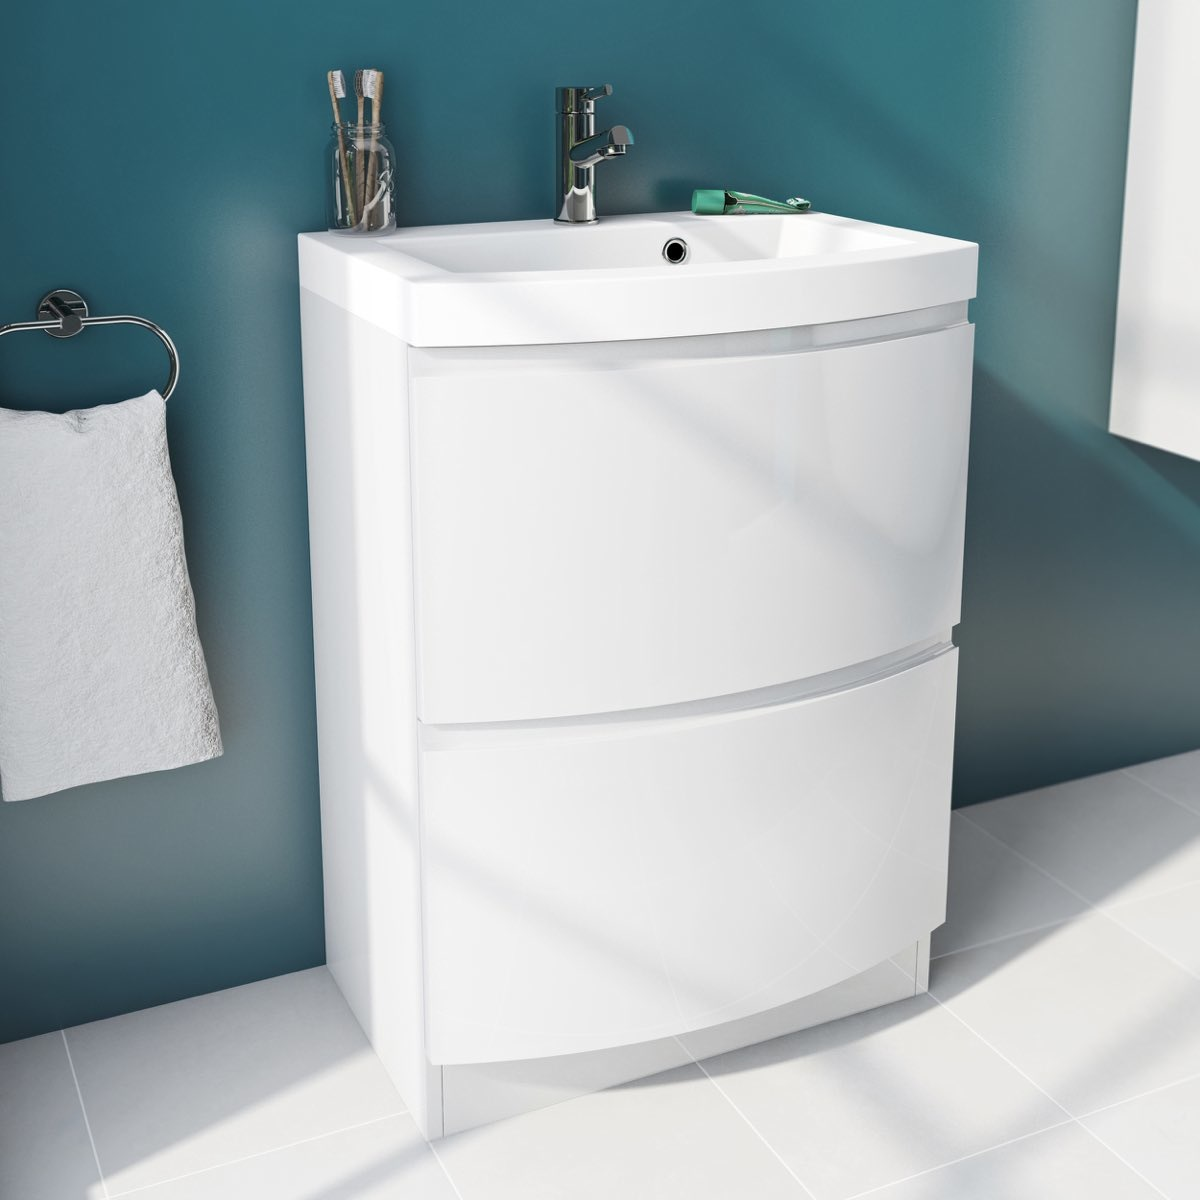 Mode Harrison white floorstanding vanity drawer unit and basin with mirror